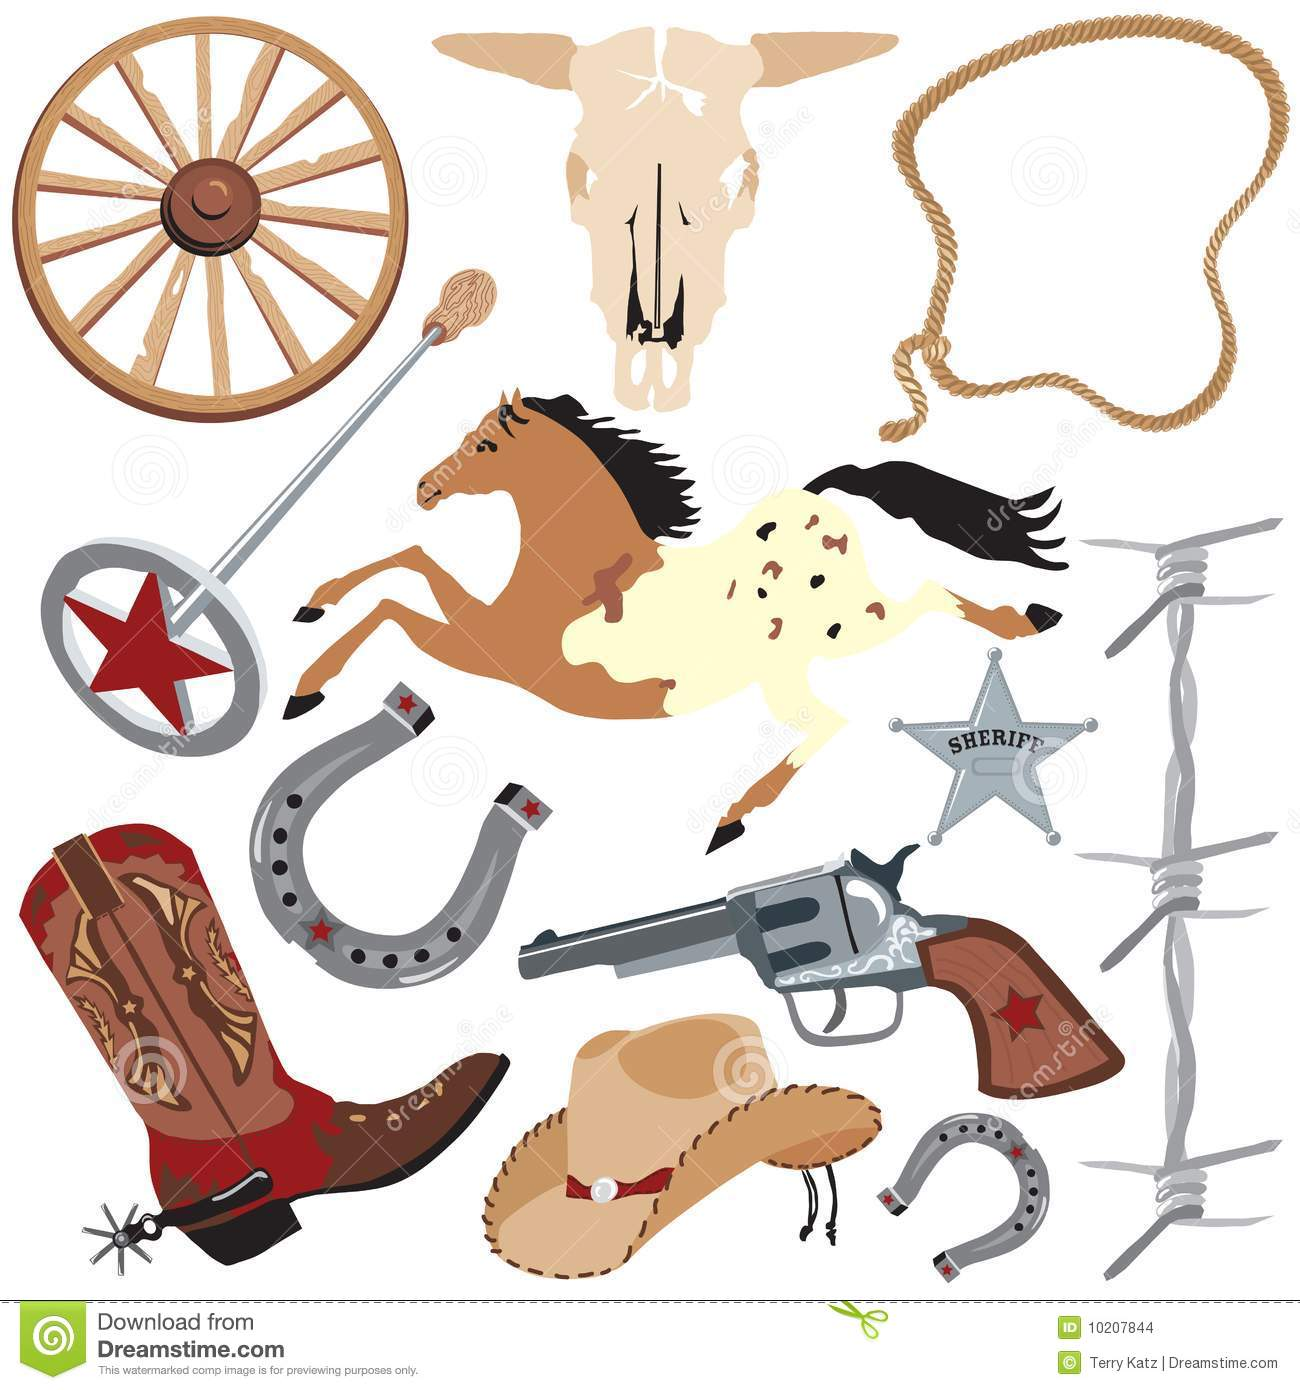 Cowboy Clip Art Elements, Isolated On White Stock Images.